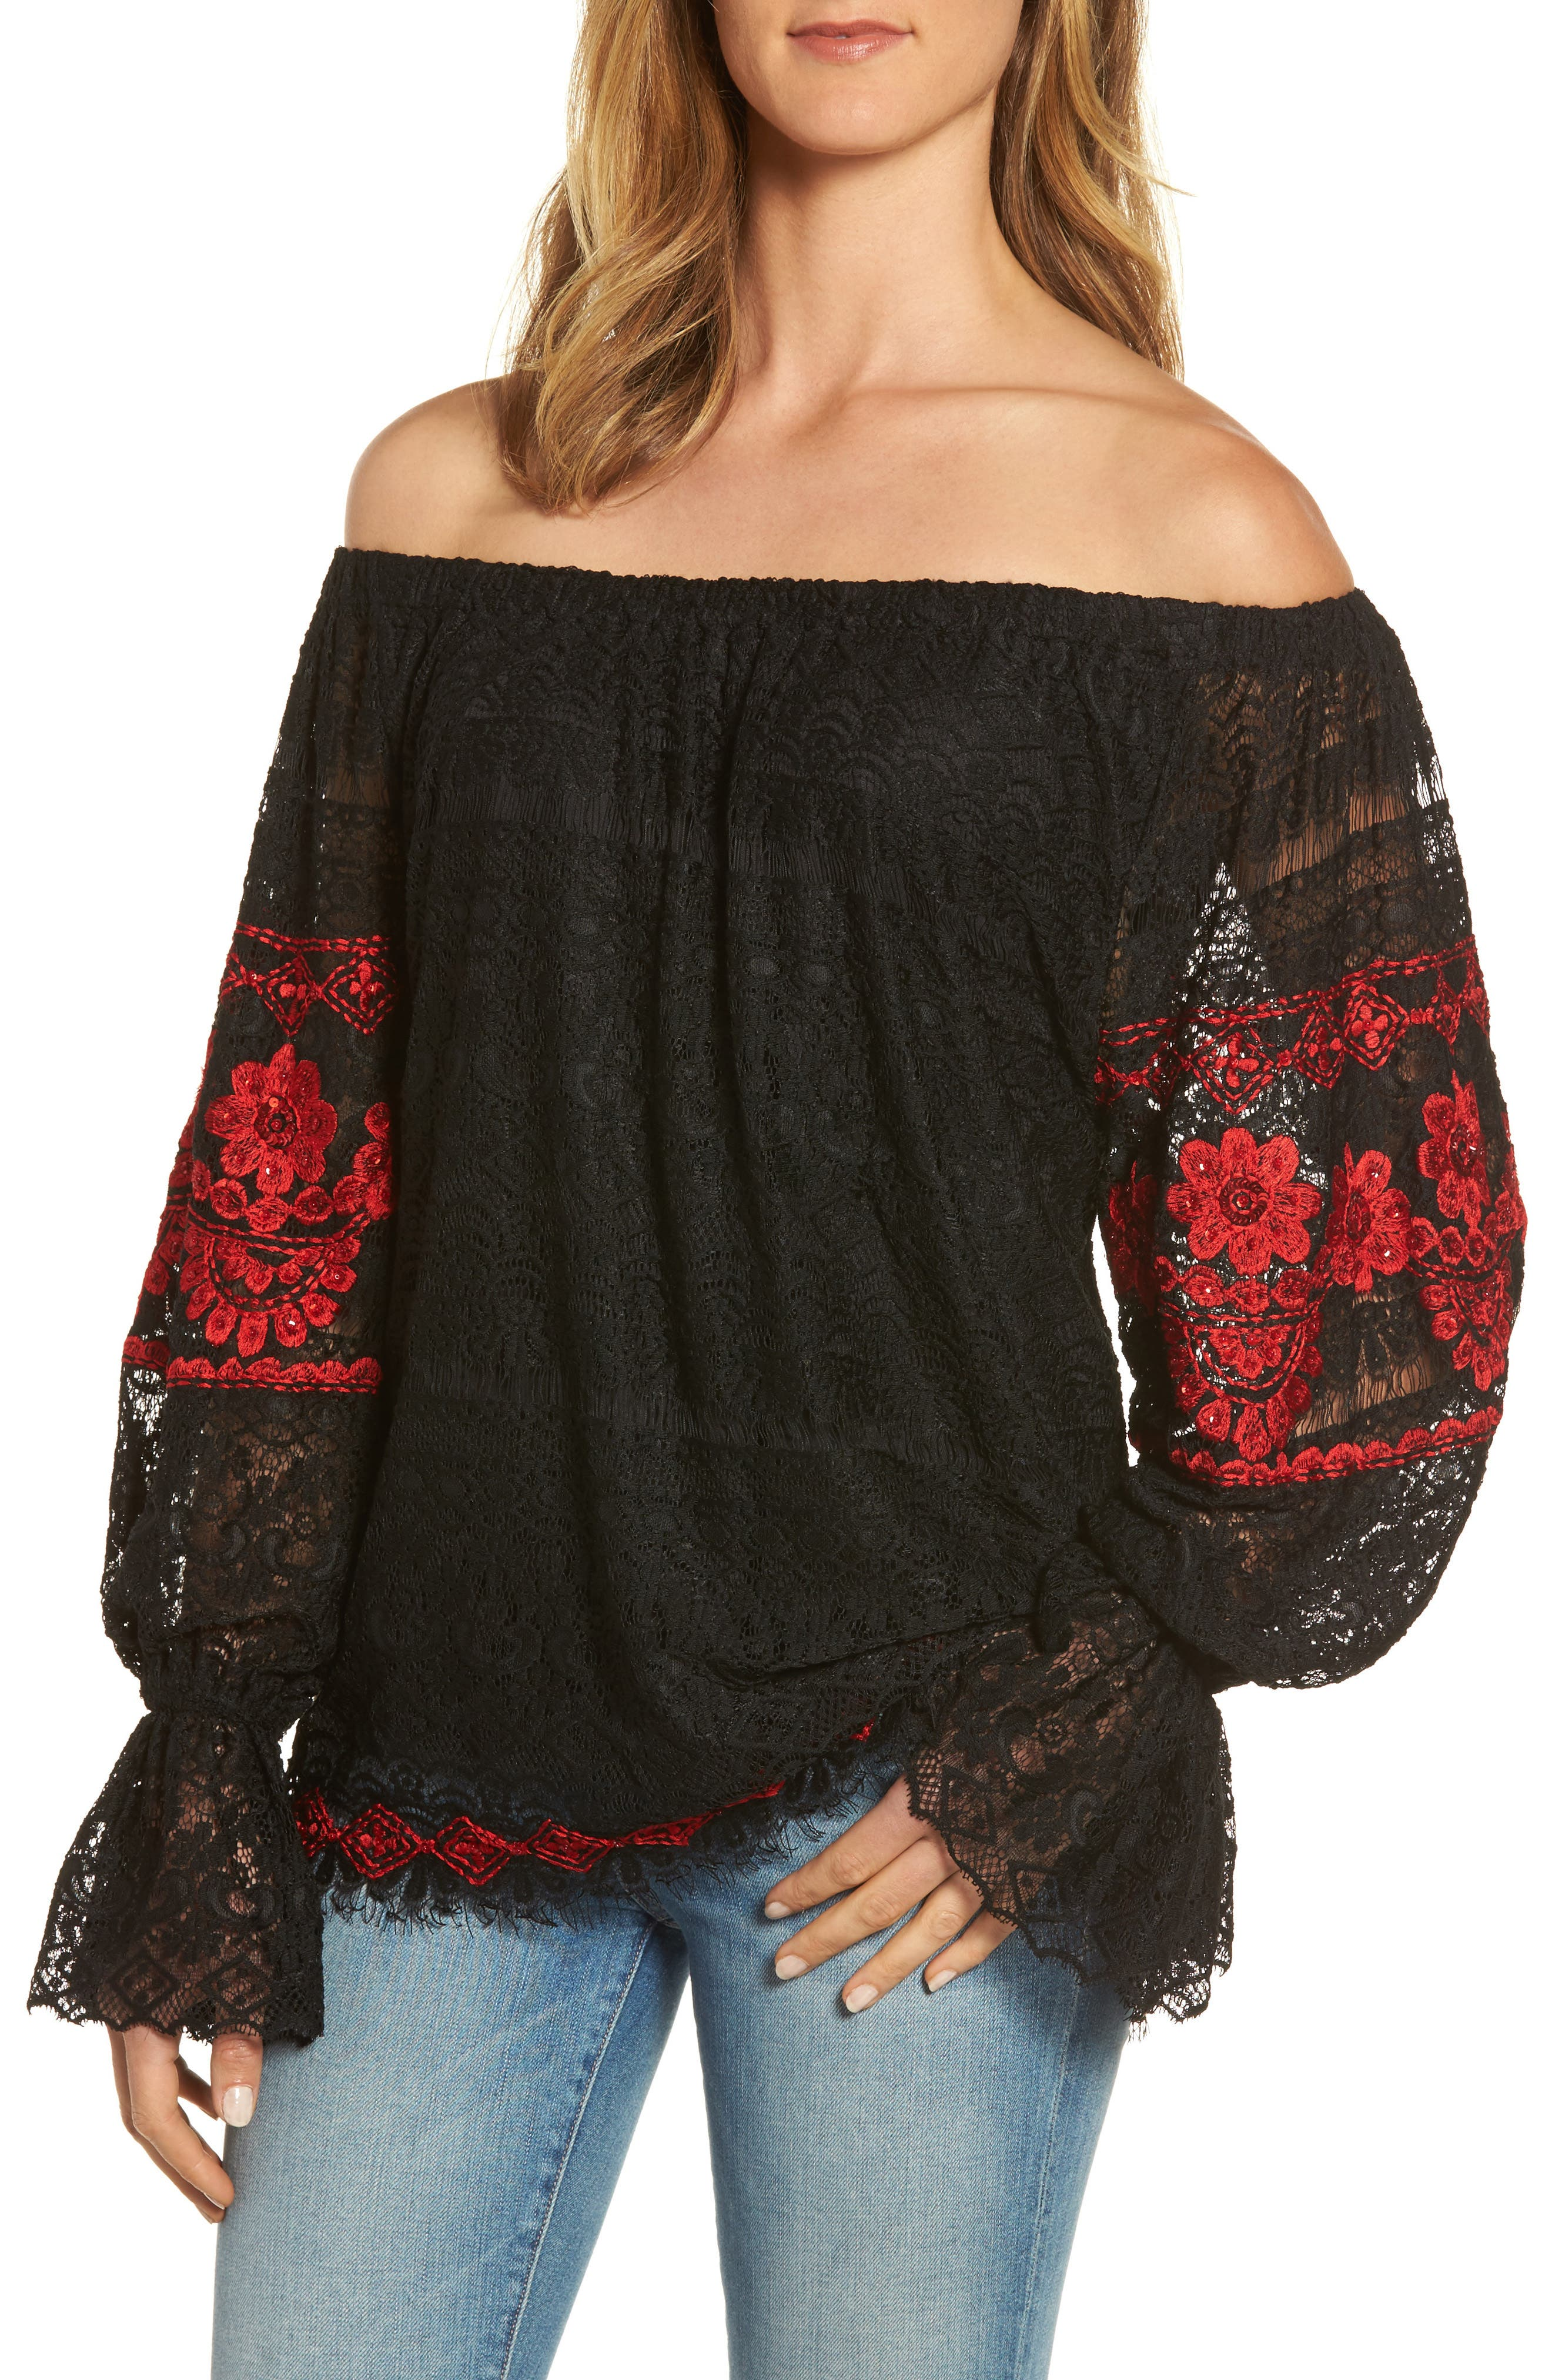 Clare Off the Shoulder Lace Top,                             Main thumbnail 1, color,                             Black